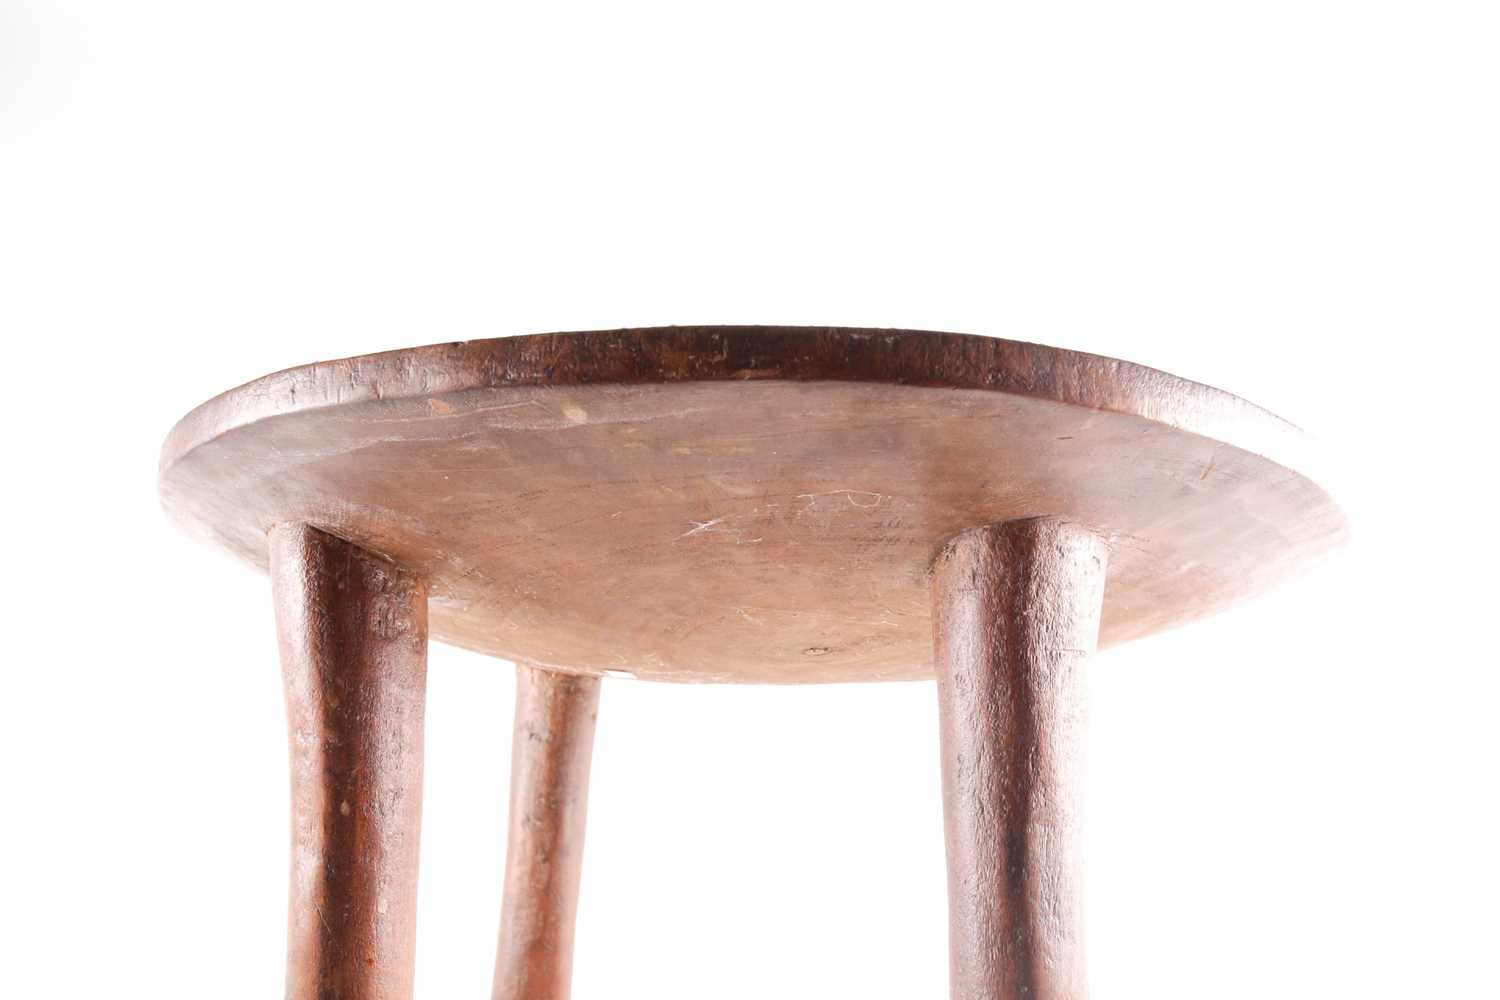 A Kamba stool, Kenya, the circular top inlaid with coloured glass beads, decorated with flower, - Image 6 of 6